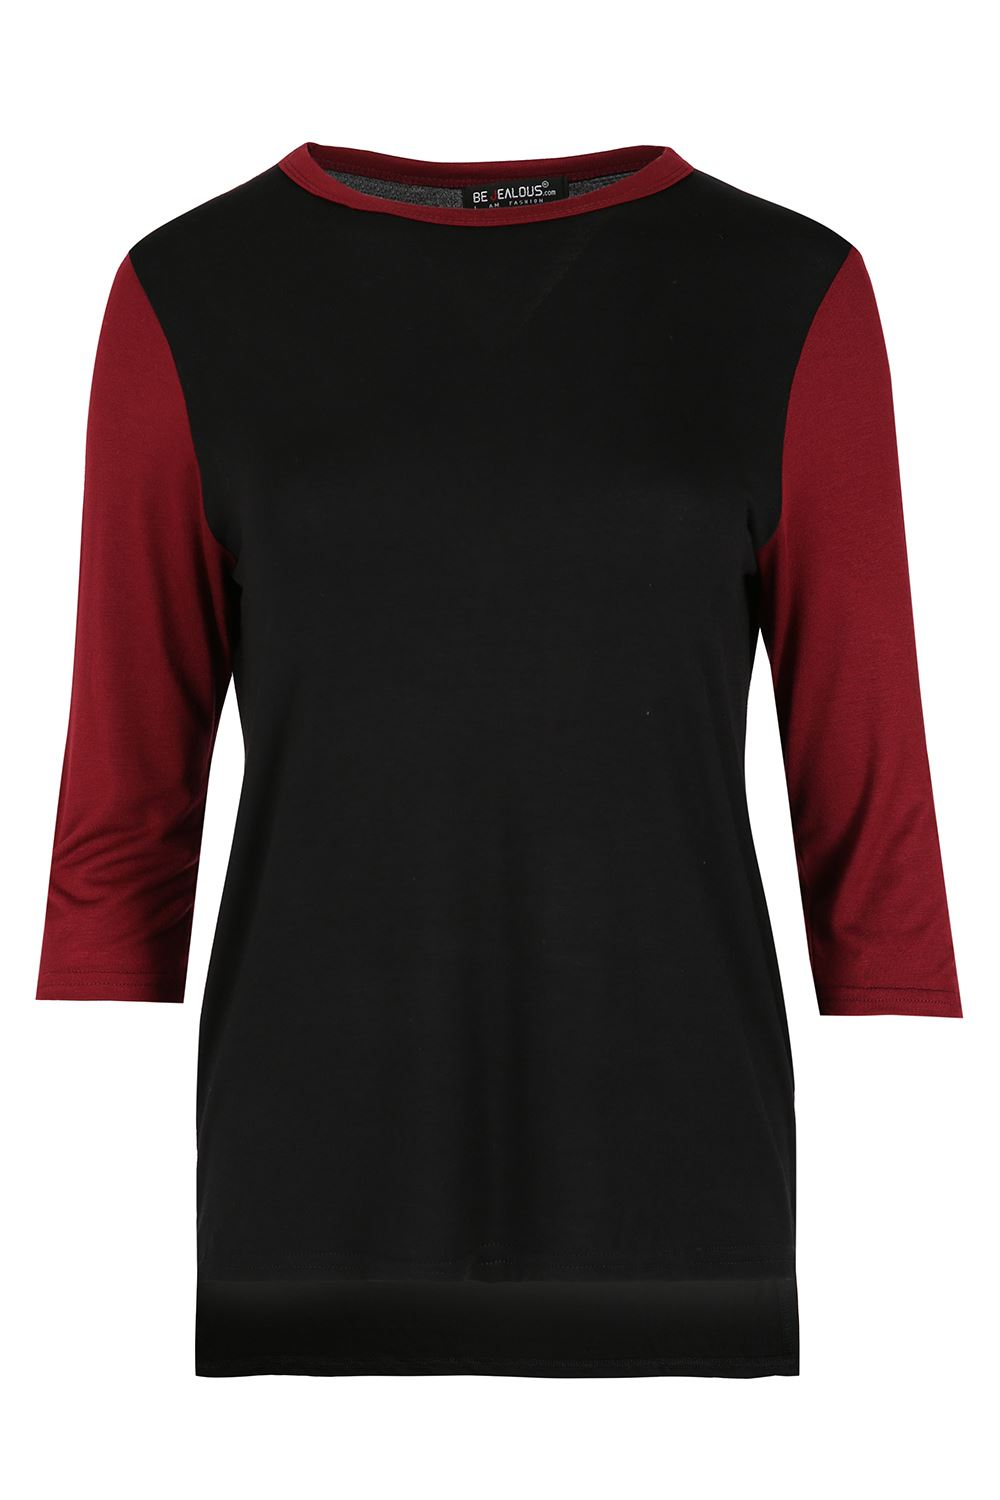 Womens hi lo t shirt ladies round neck 3 4 contrast sleeve for Plus size 3 4 sleeve tee shirts